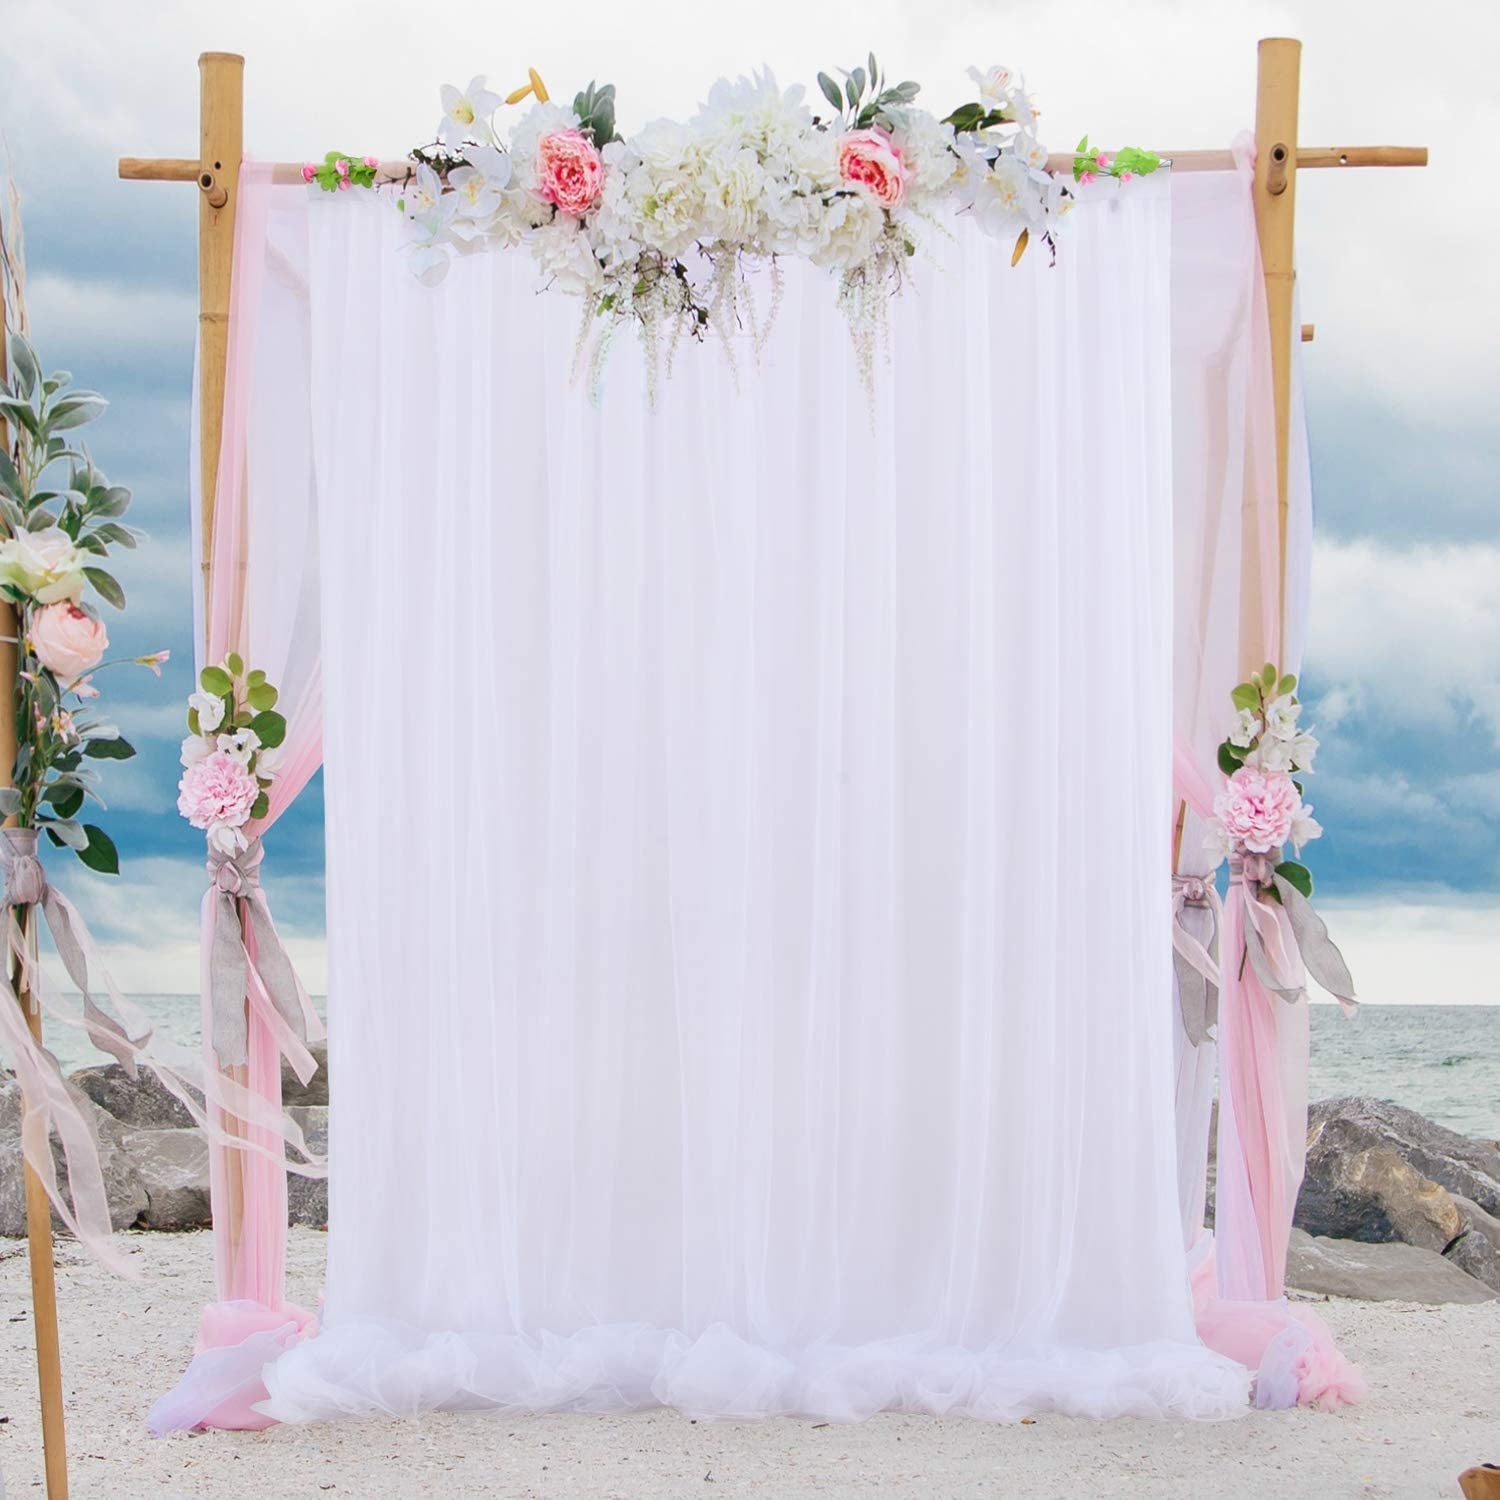 white wedding party backdrop curtain white tulle backdrop curtains engagement bridal shower photography props for baby shower party wedding 5 ft x 8